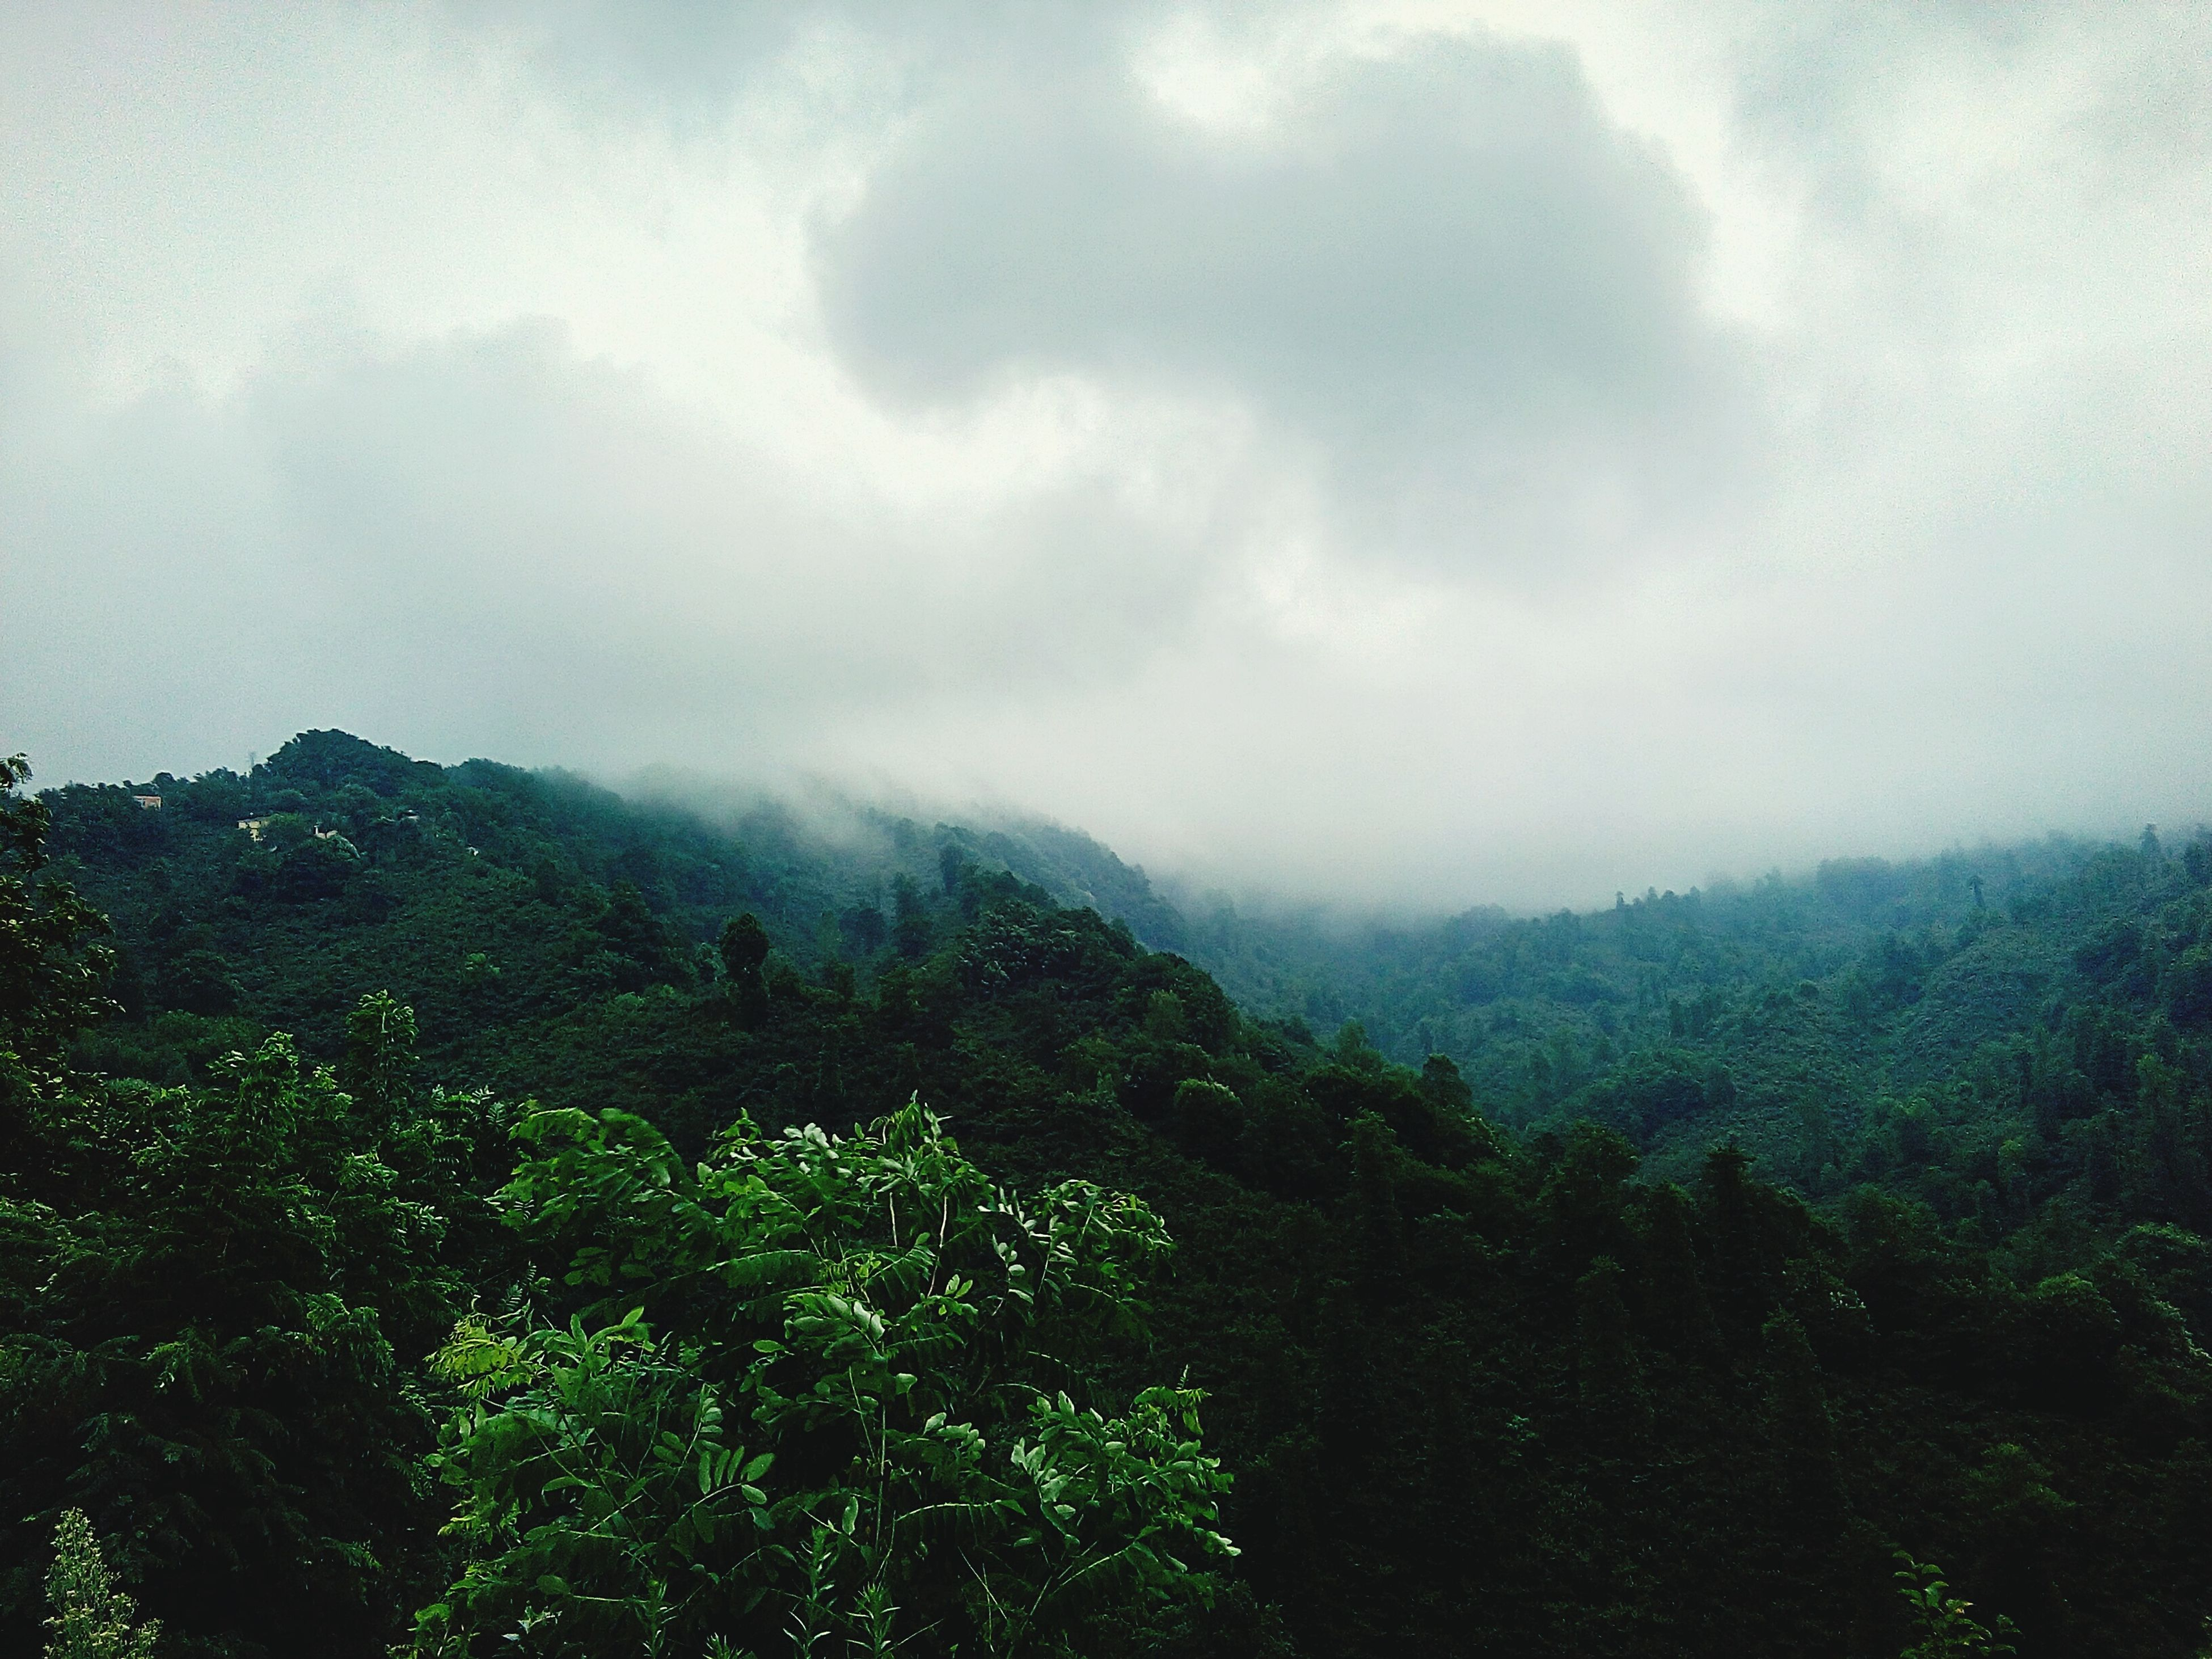 mountain, tranquil scene, tranquility, sky, scenics, beauty in nature, landscape, mountain range, nature, cloud - sky, growth, tree, cloudy, non-urban scene, green color, idyllic, cloud, plant, weather, day, outdoors, remote, hill, no people, lush foliage, non urban scene, grass, overcast, horizon over land, green, majestic